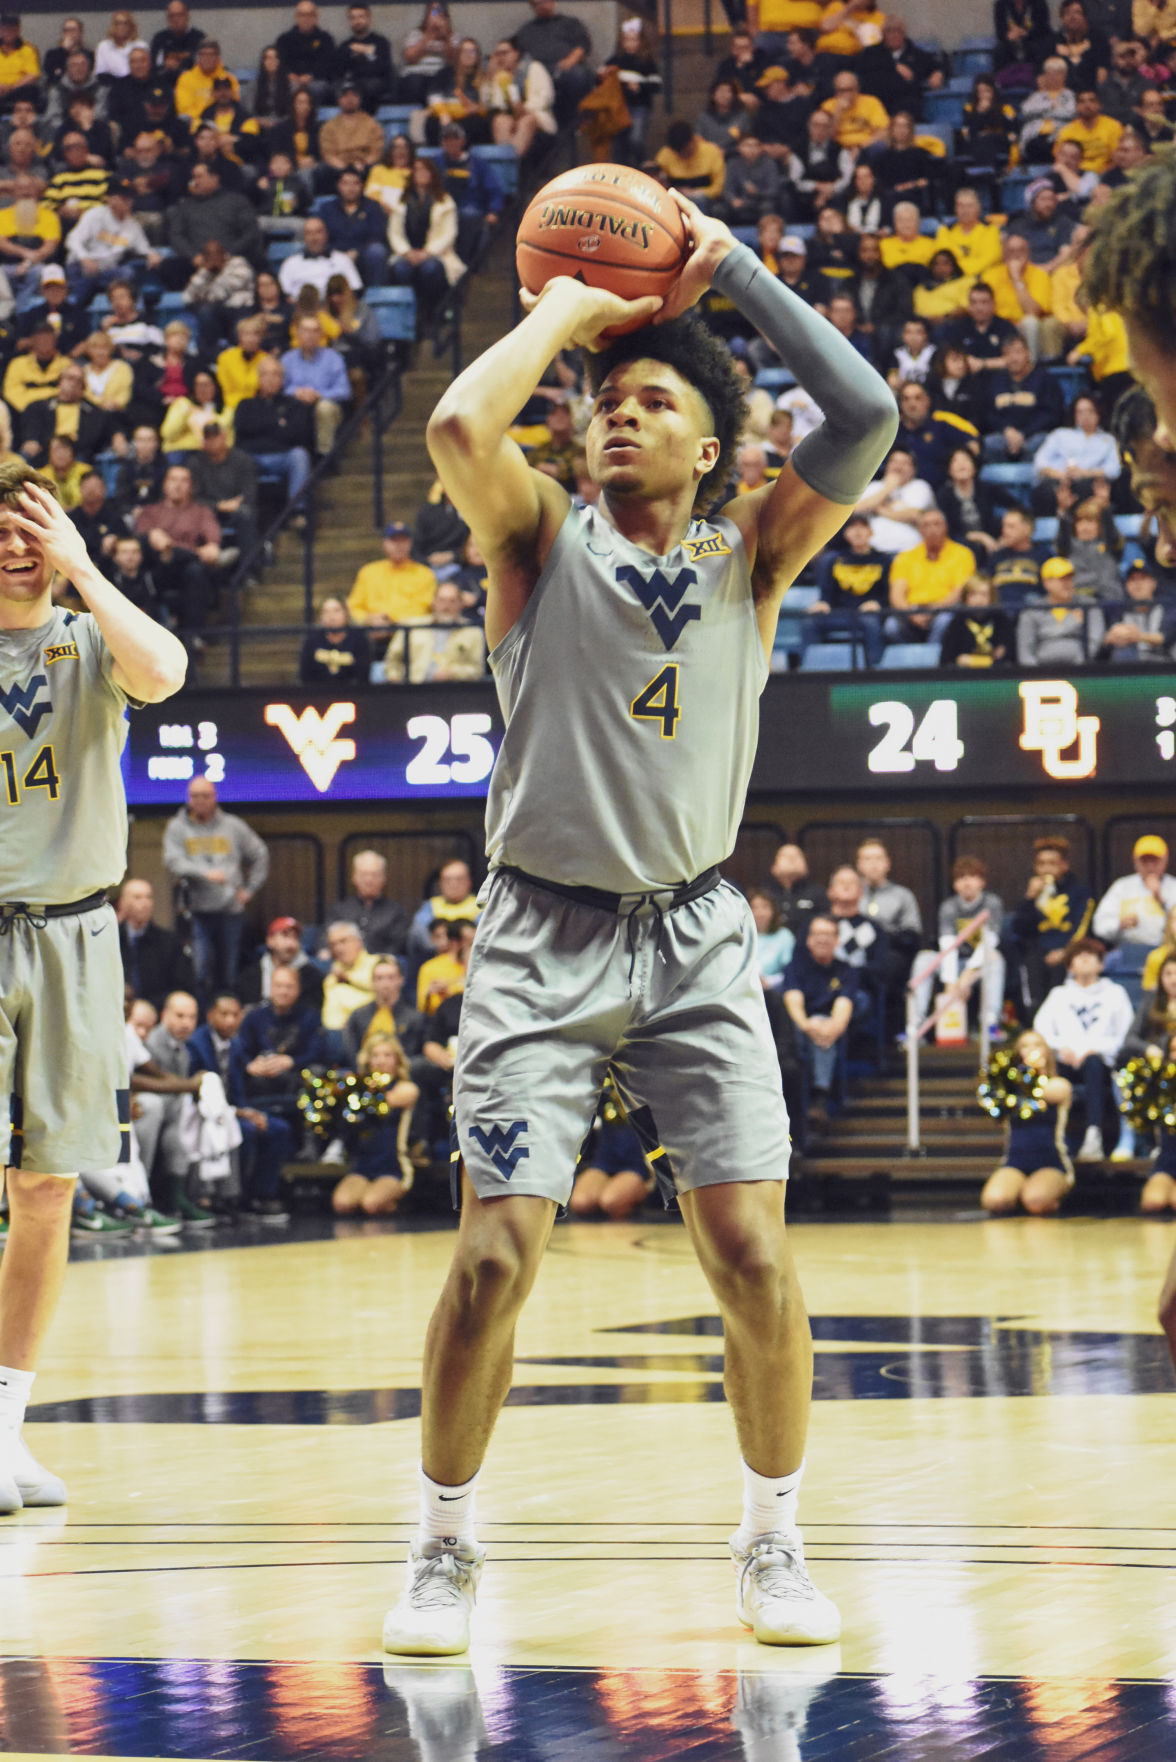 Mar. 7, 2020 - Freshman Guard Miles McBride takes a free throw shot against Baylor at the Coliseum.